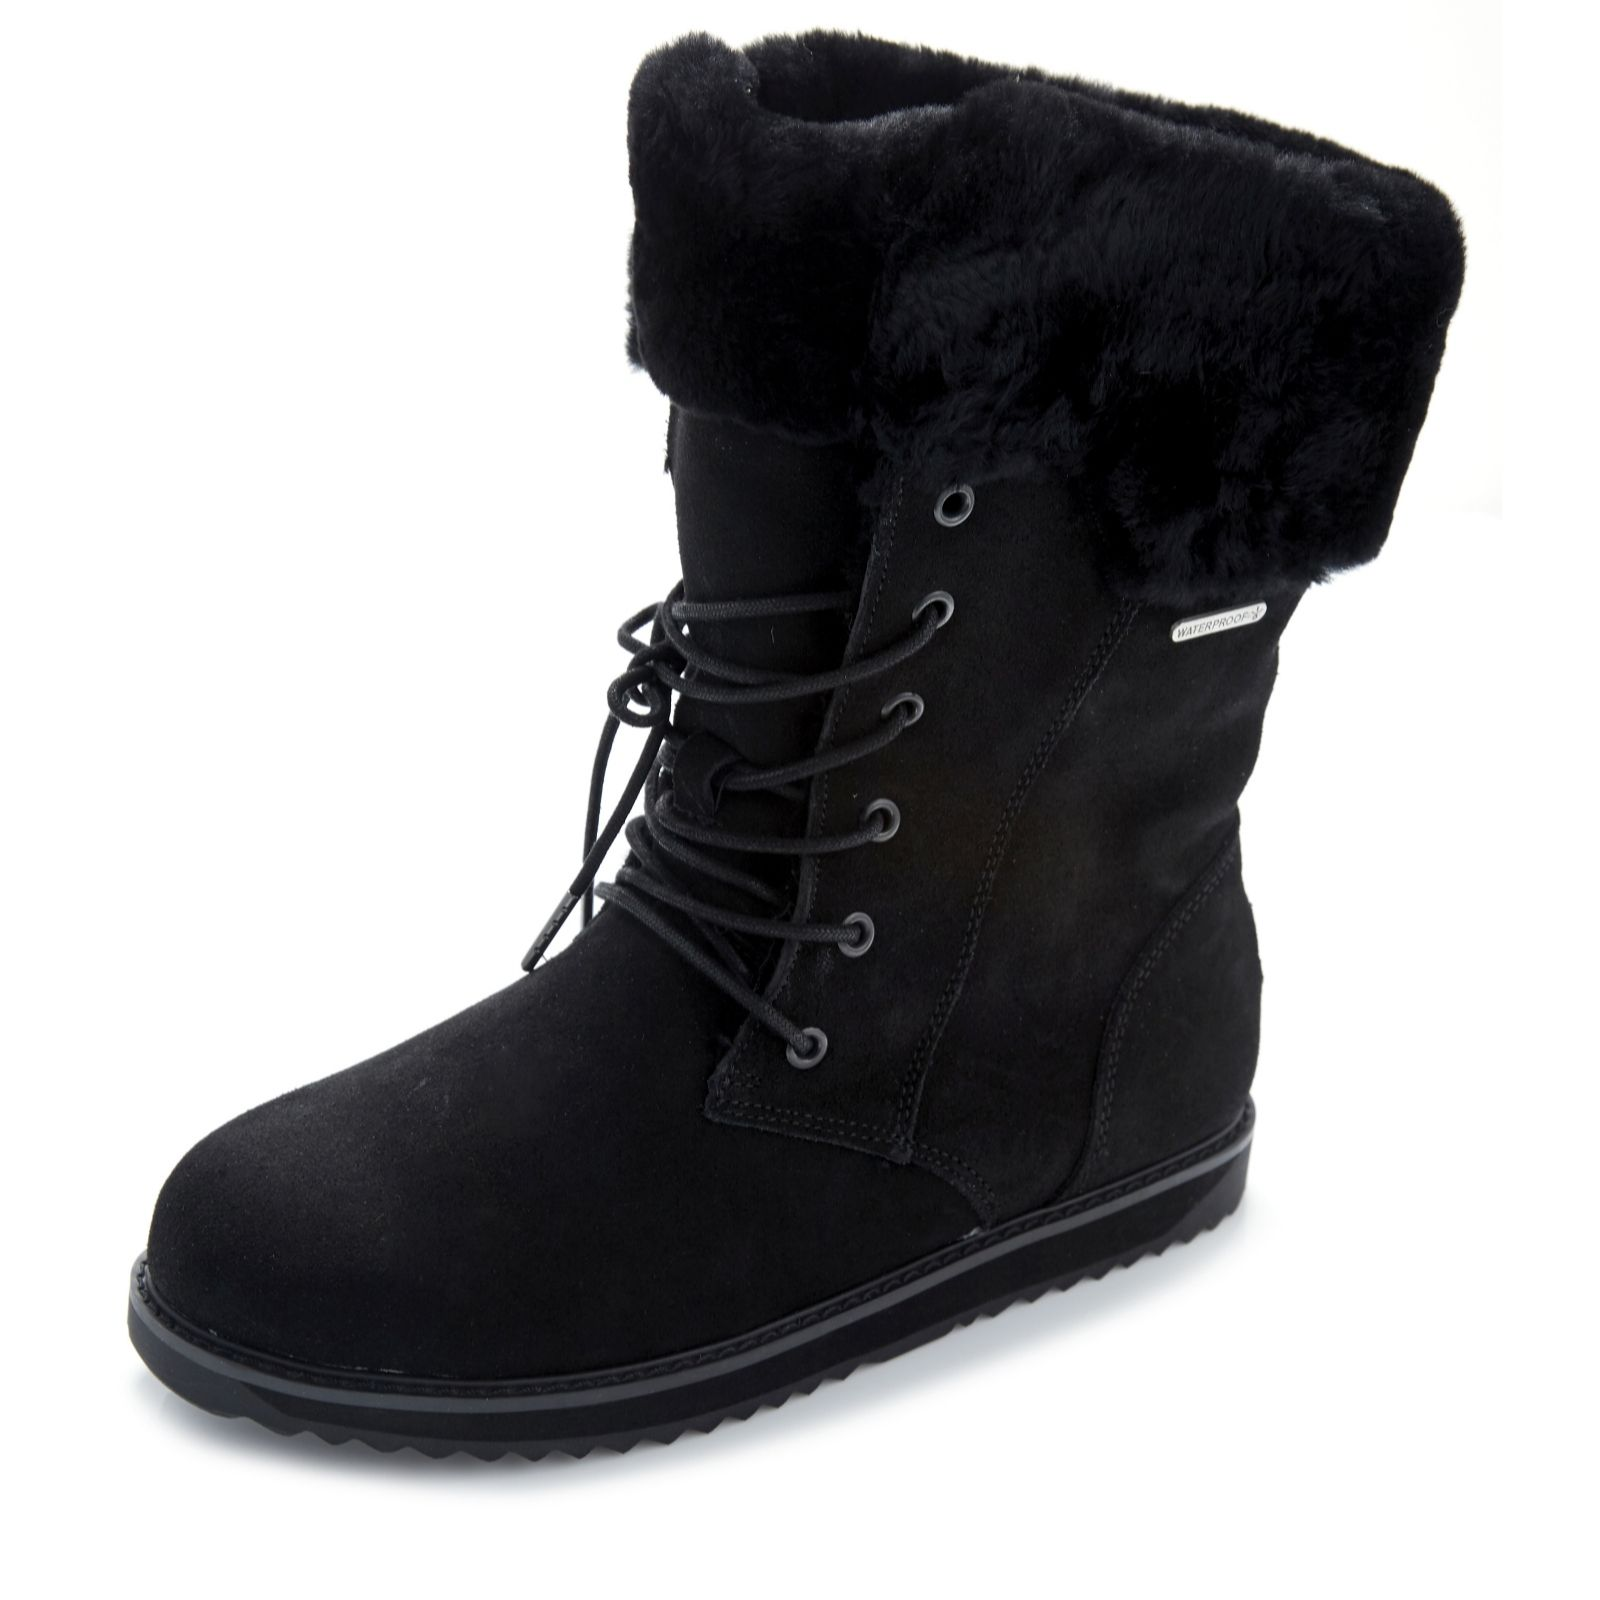 3b91177e498 Emu All Weather Shoreline Waterproof Suede Lace Front Boot - QVC UK